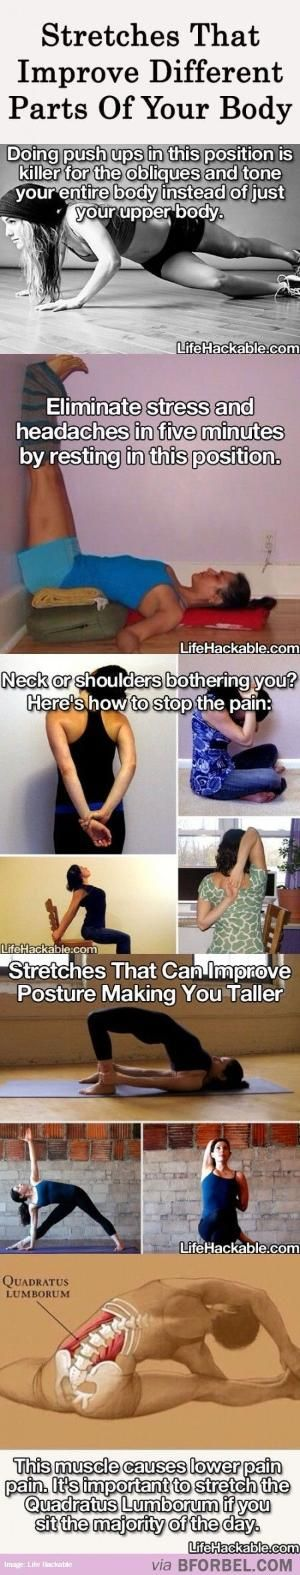 Types Of Stretches That Improve Different Parts Of Your Body by llmnranch